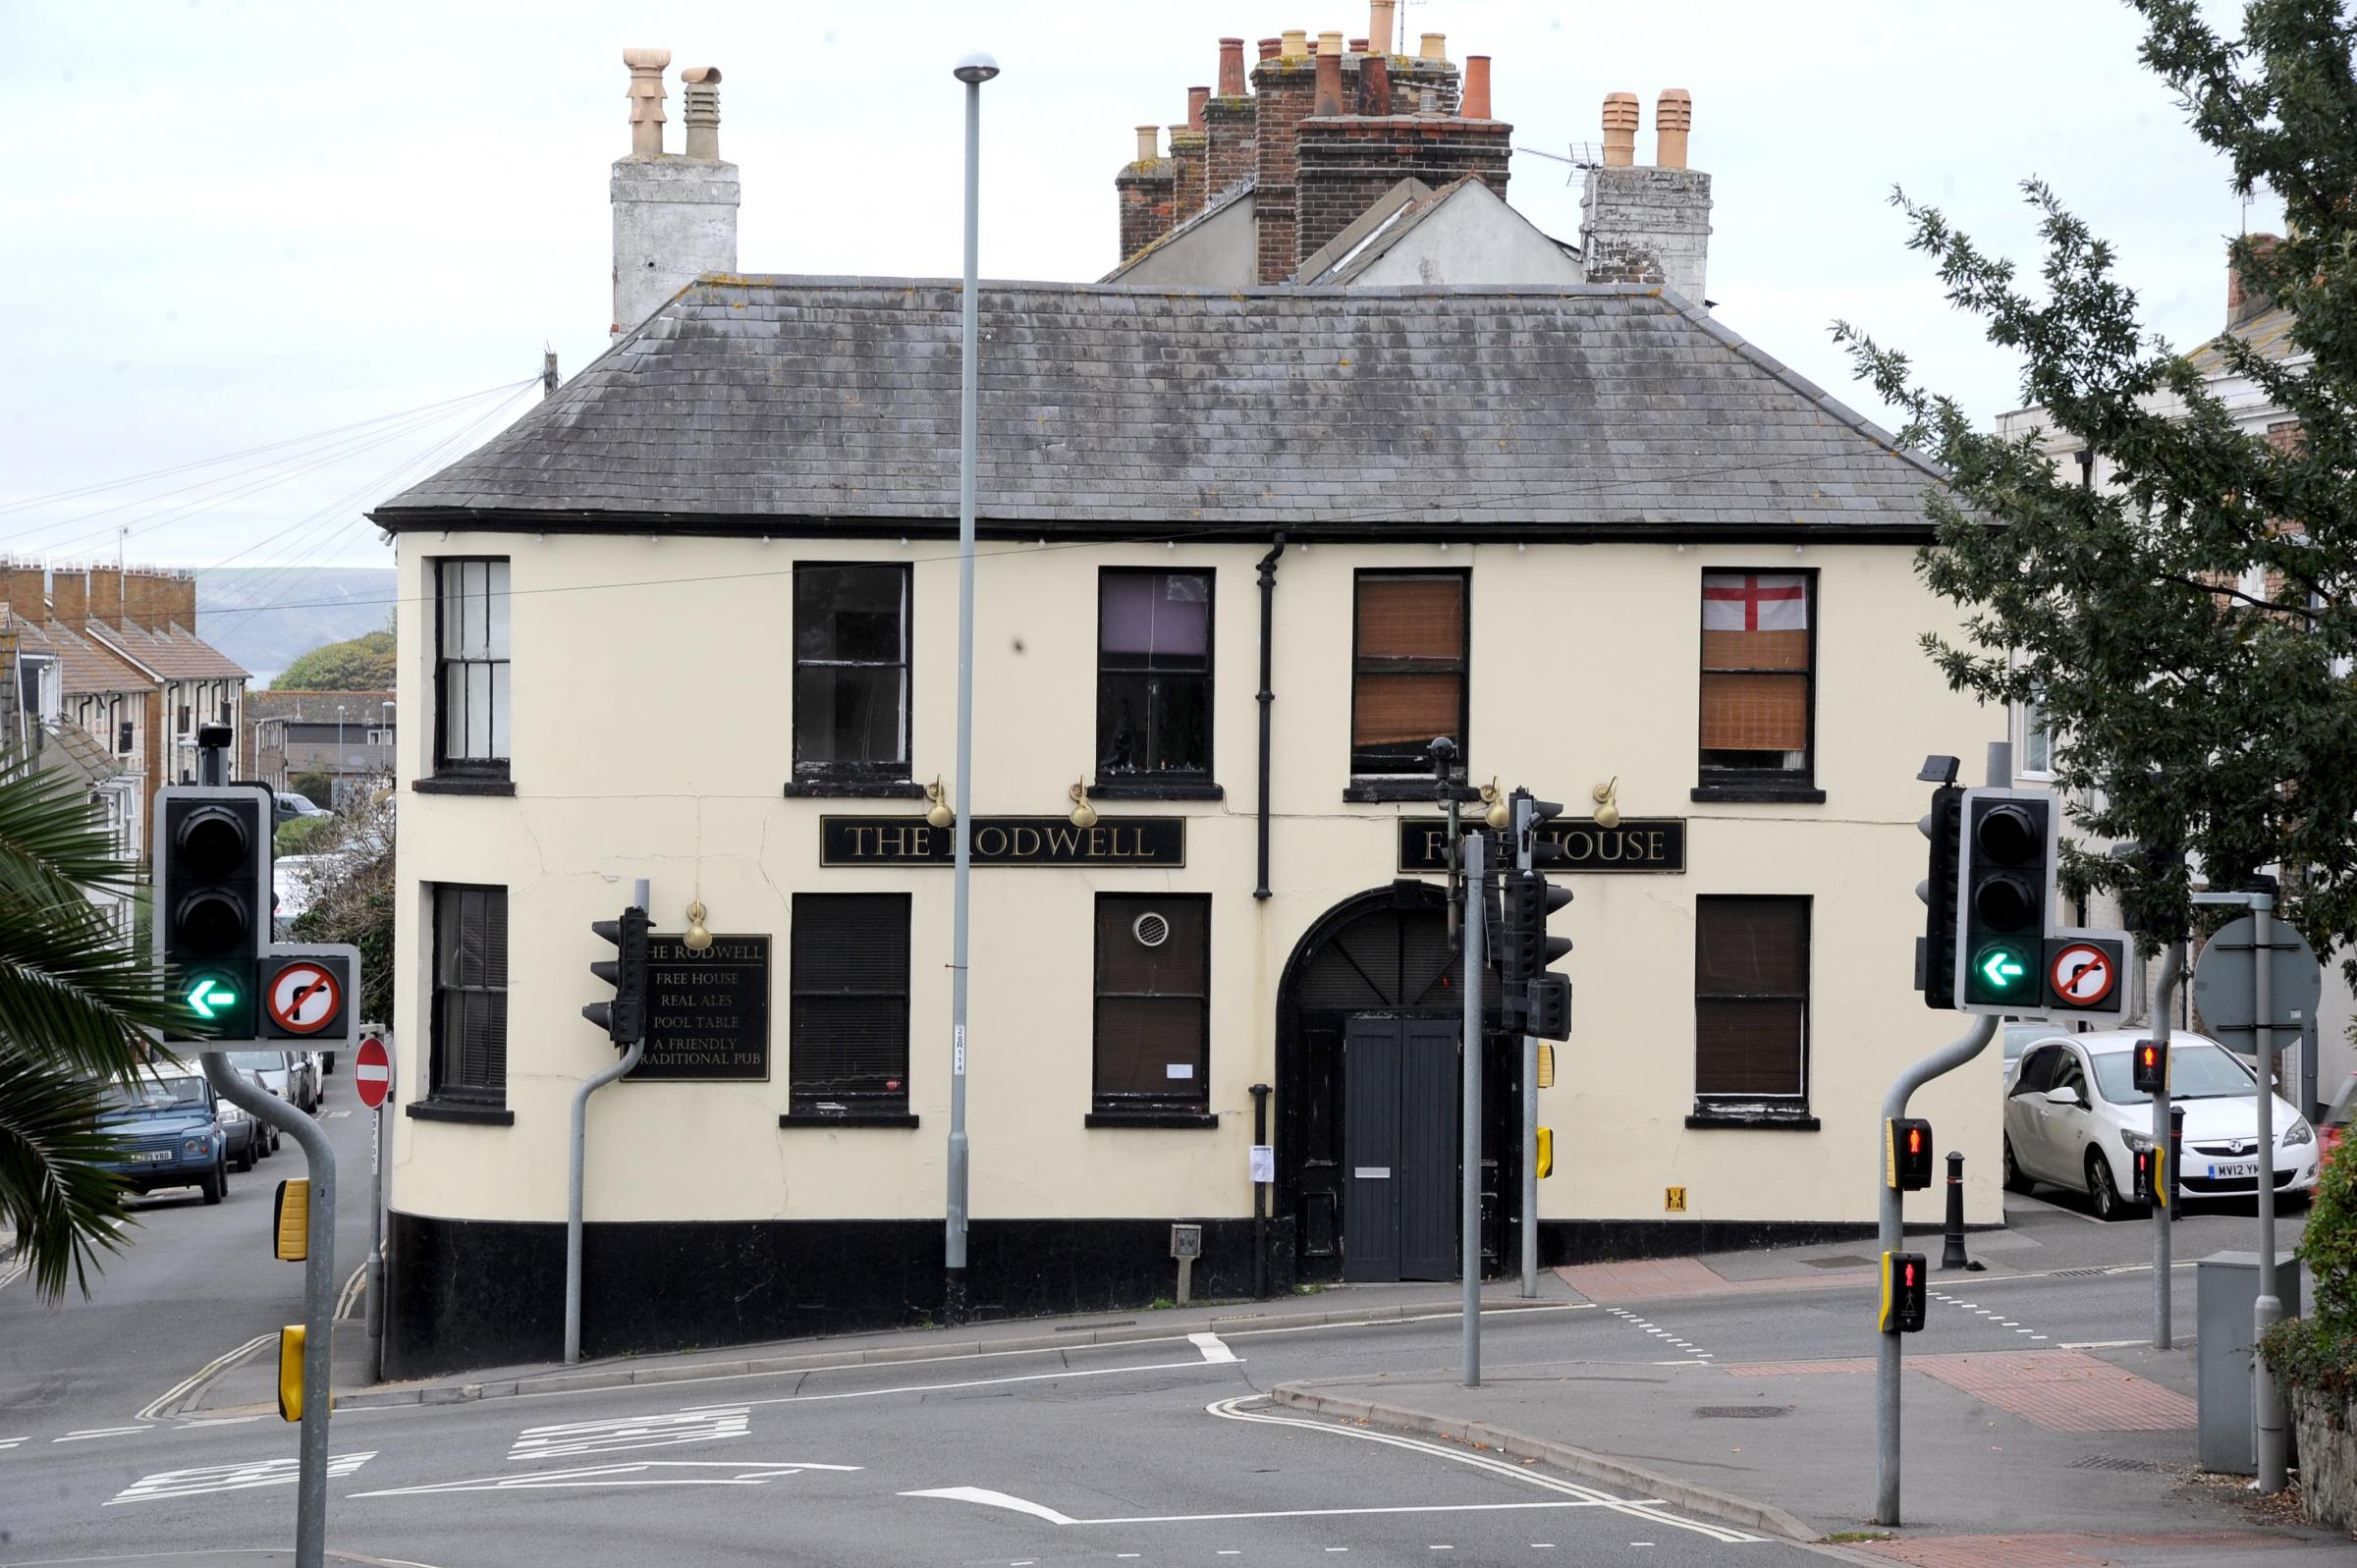 The Rodwell pub is set to be converted into a HMO